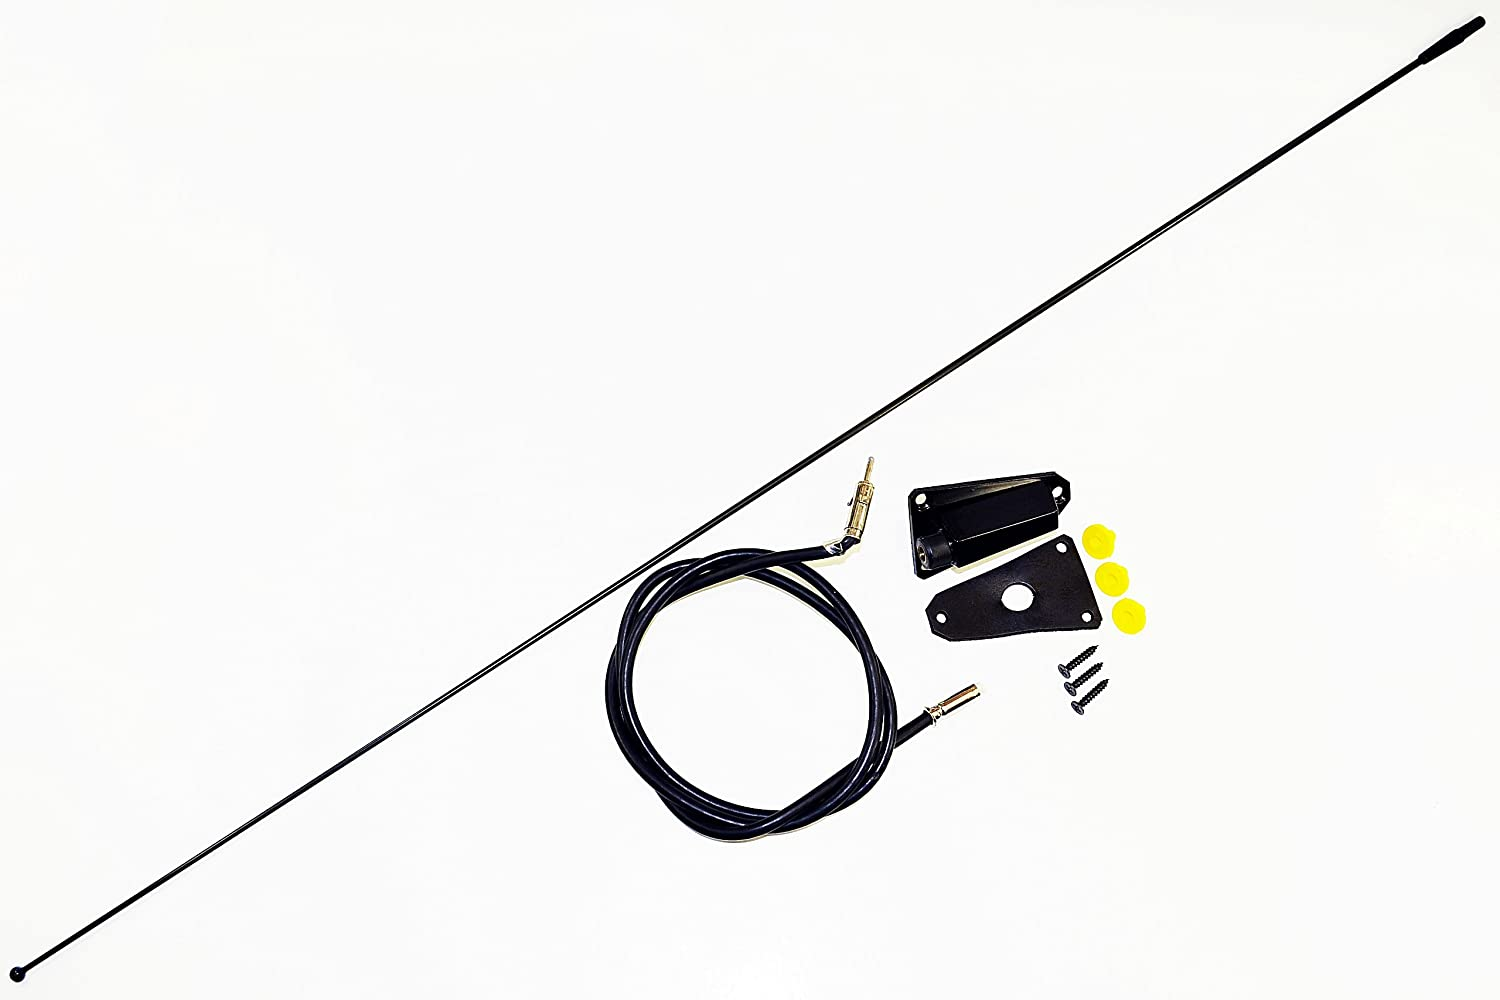 Antennamastsrus Black Replacement Antenna Is Wiring Harness Clips 1978 Cj Compatible With Jeep 1976 1995 Wrangler 1985 1996 Automotive